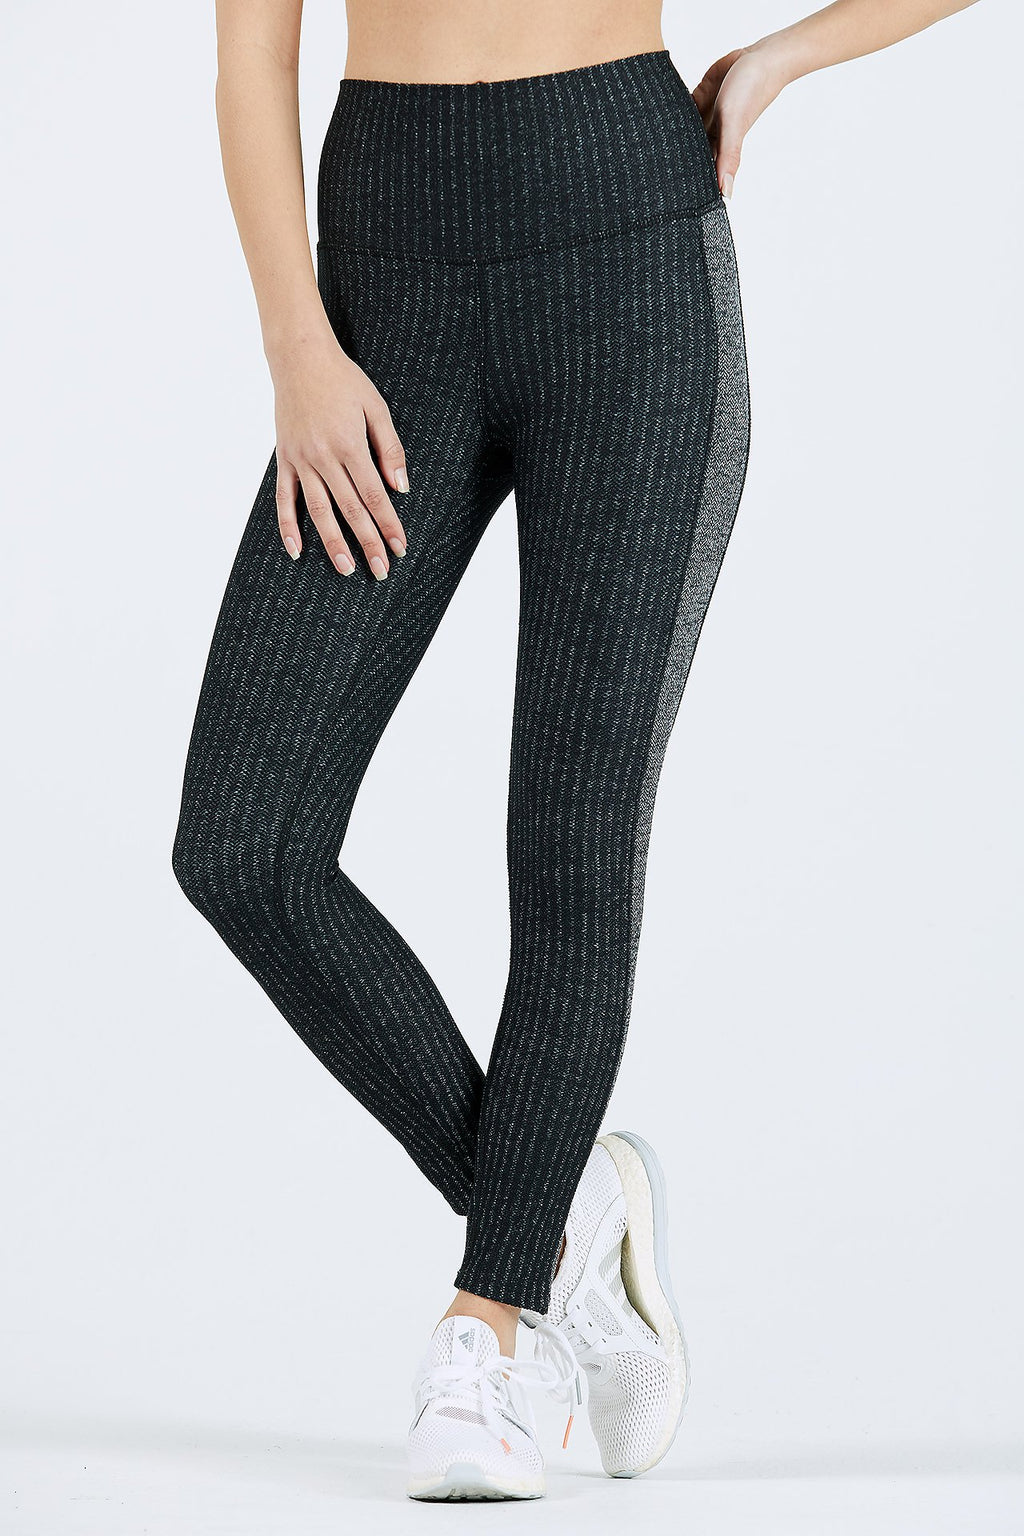 Joah Brown Boost Legging